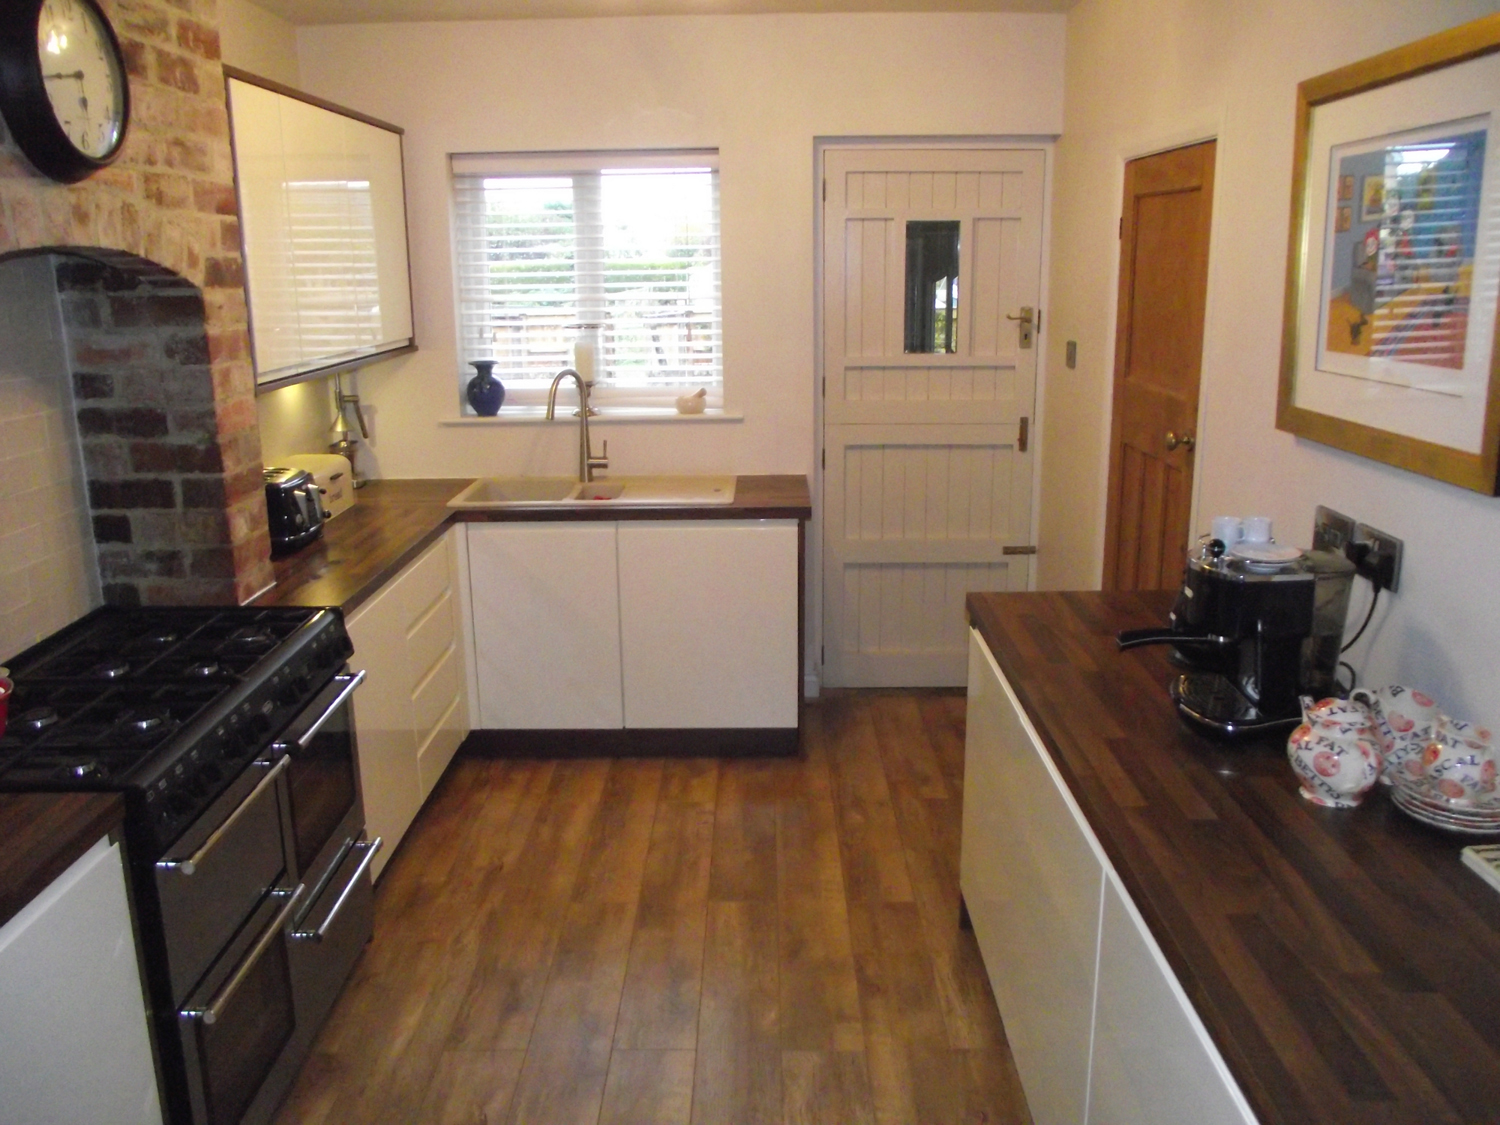 Average Increase In Value For A New Kitchen